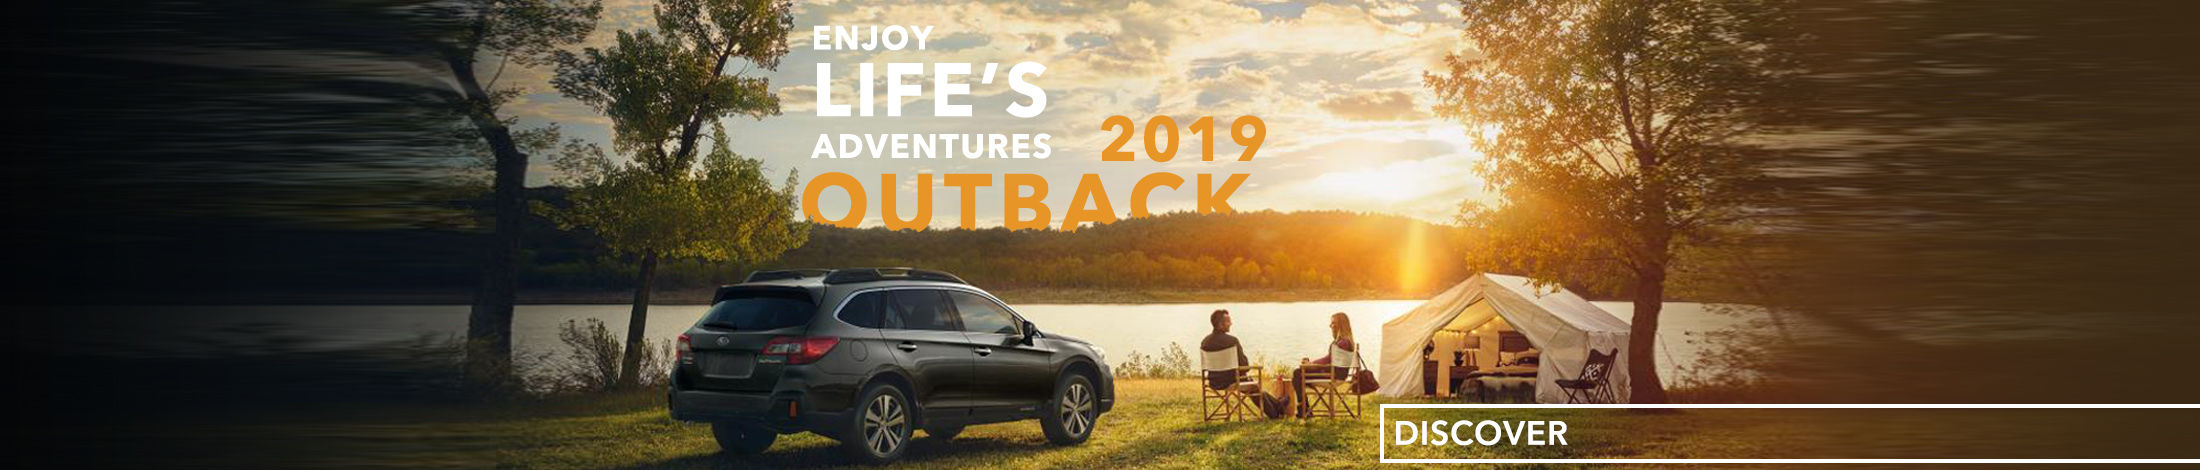 outback 2019